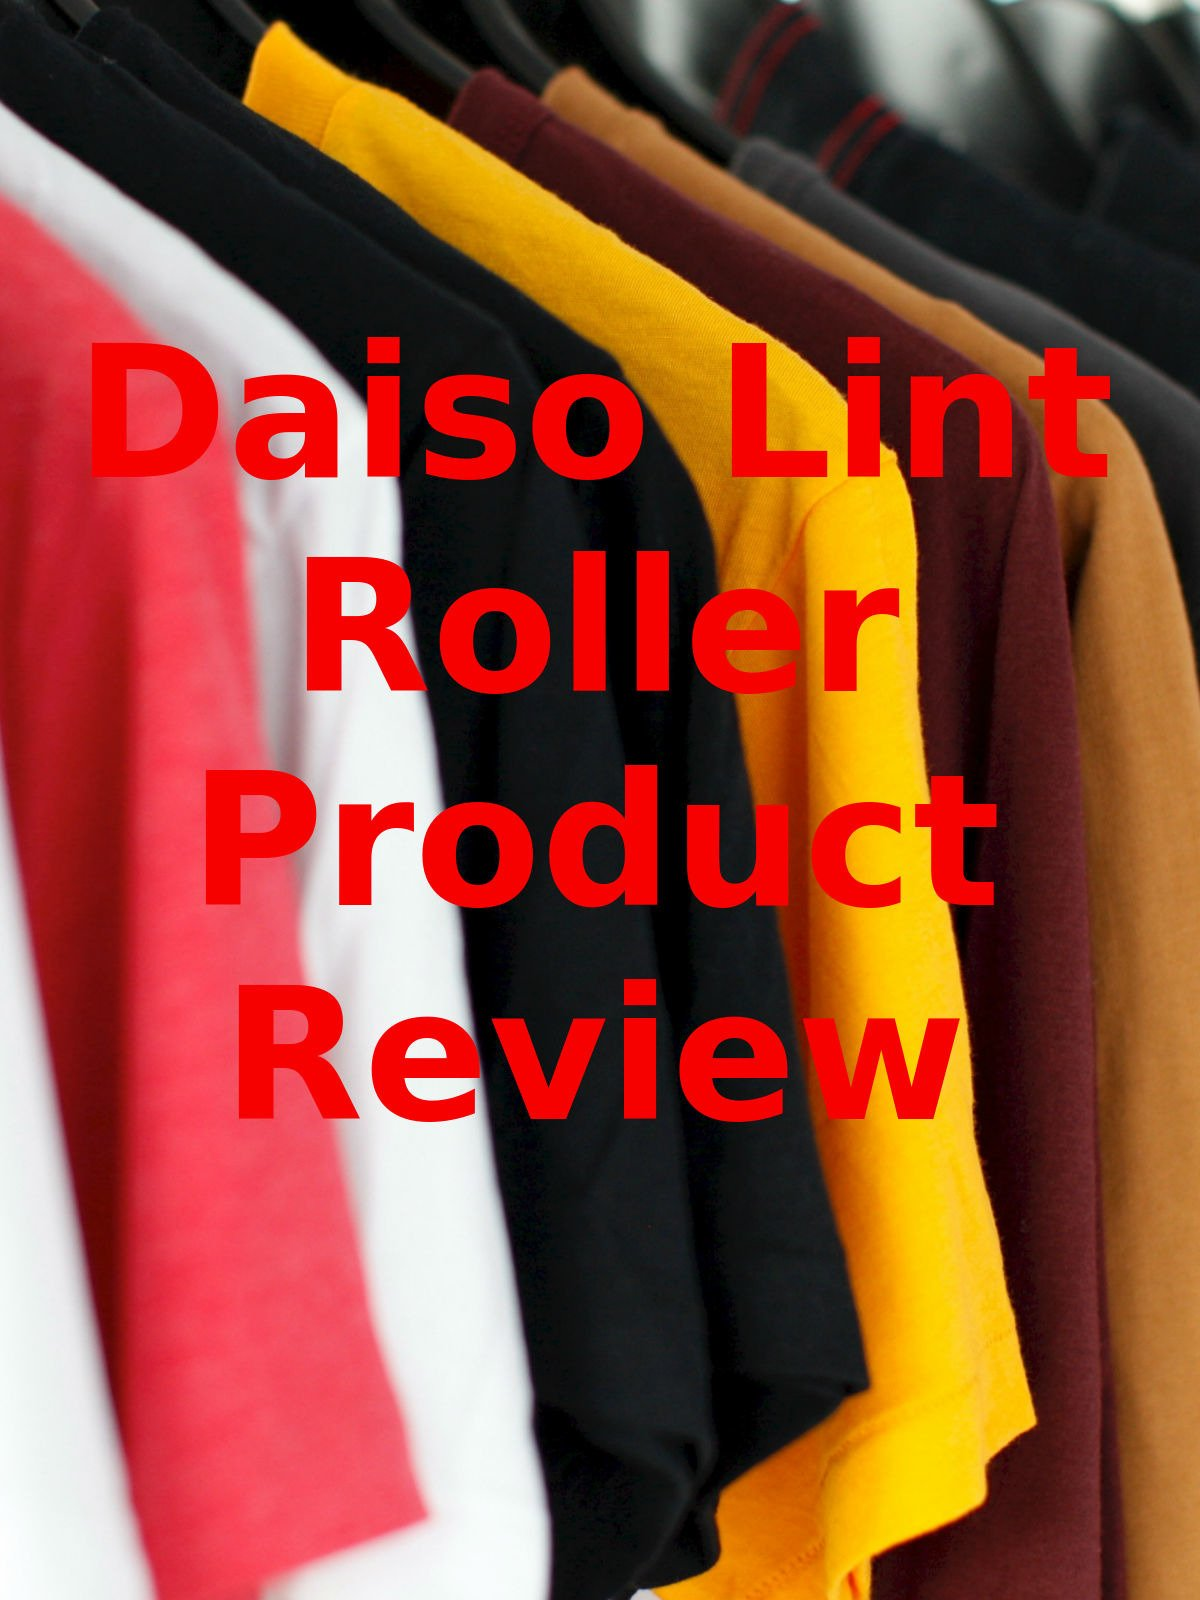 Review: Daiso Lint Roller Product Review